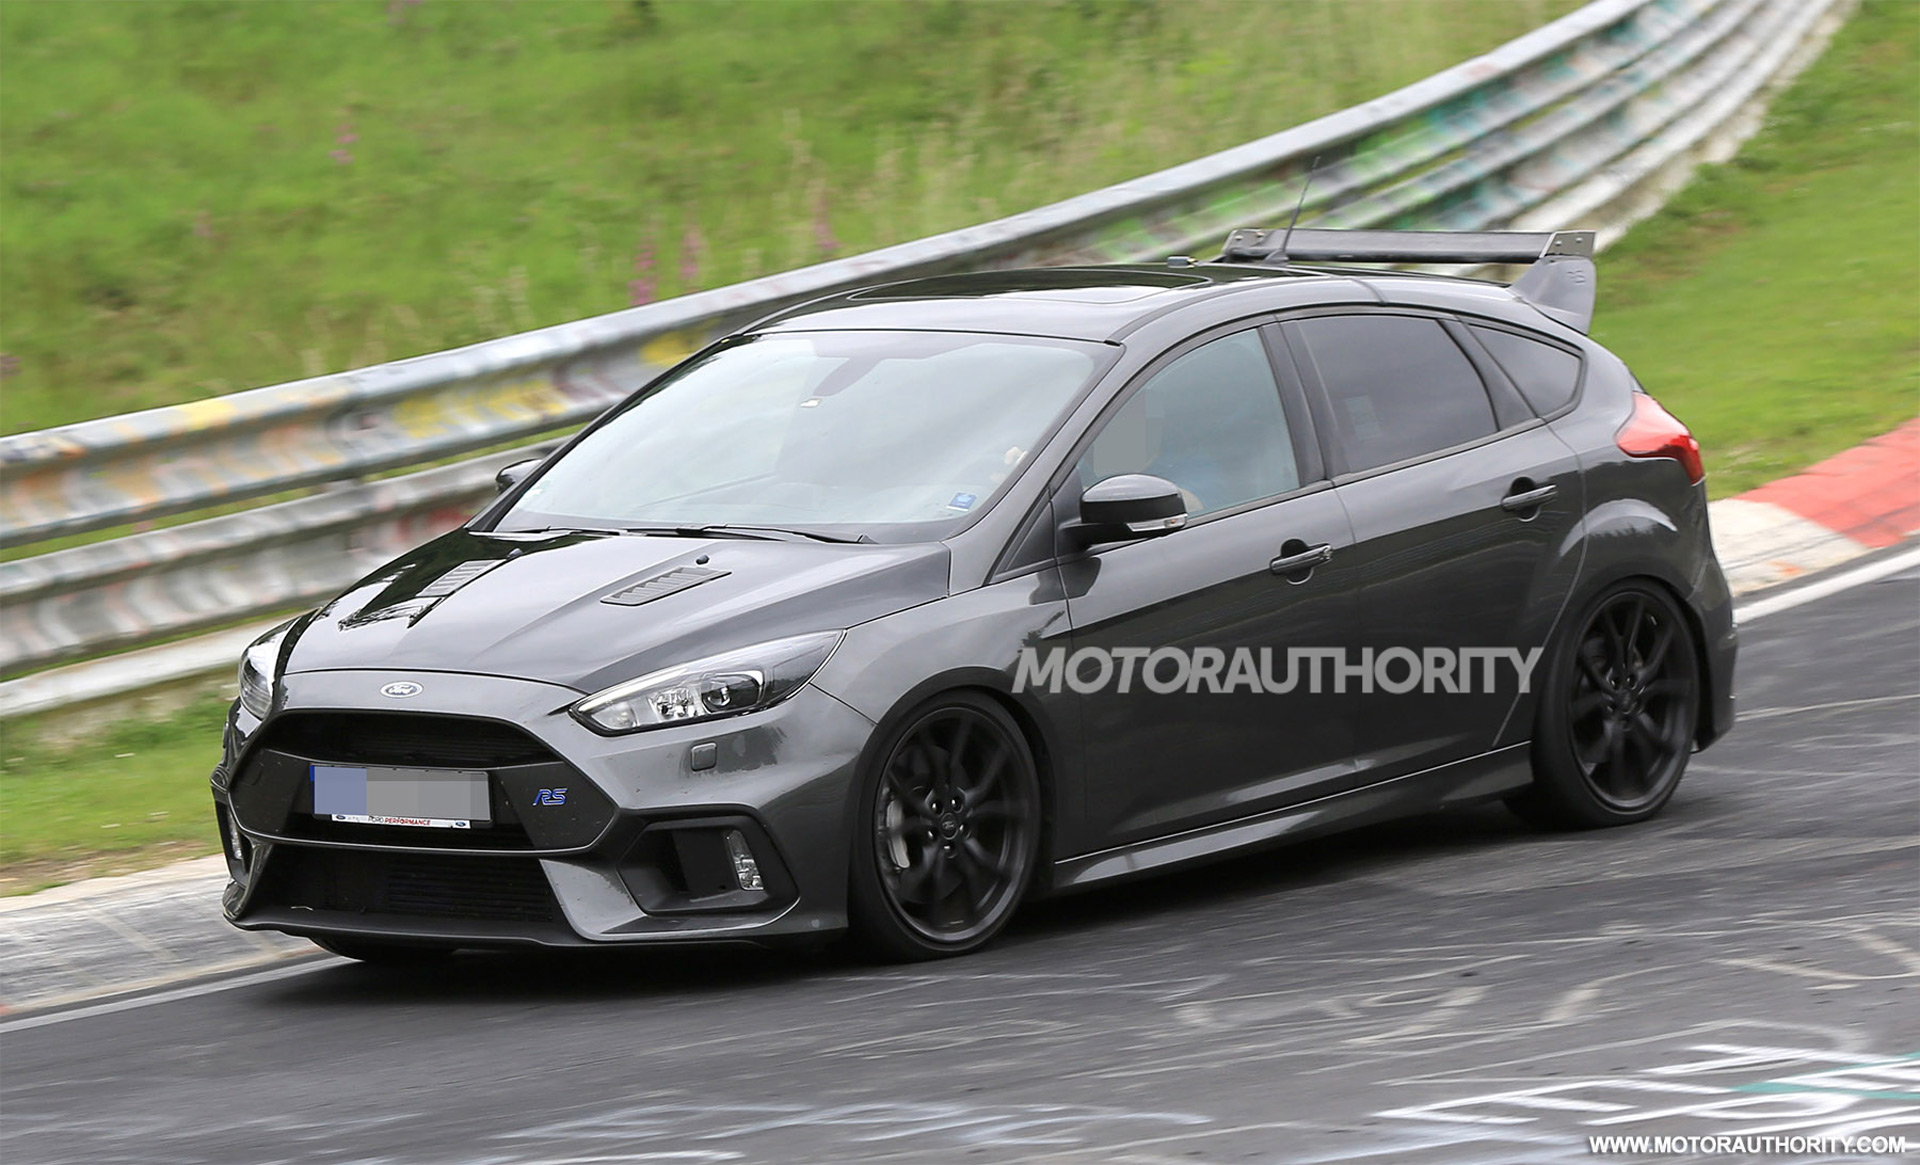 2018 Volkswagen Gti Review >> 2018 Ford Focus RS500 spy shots